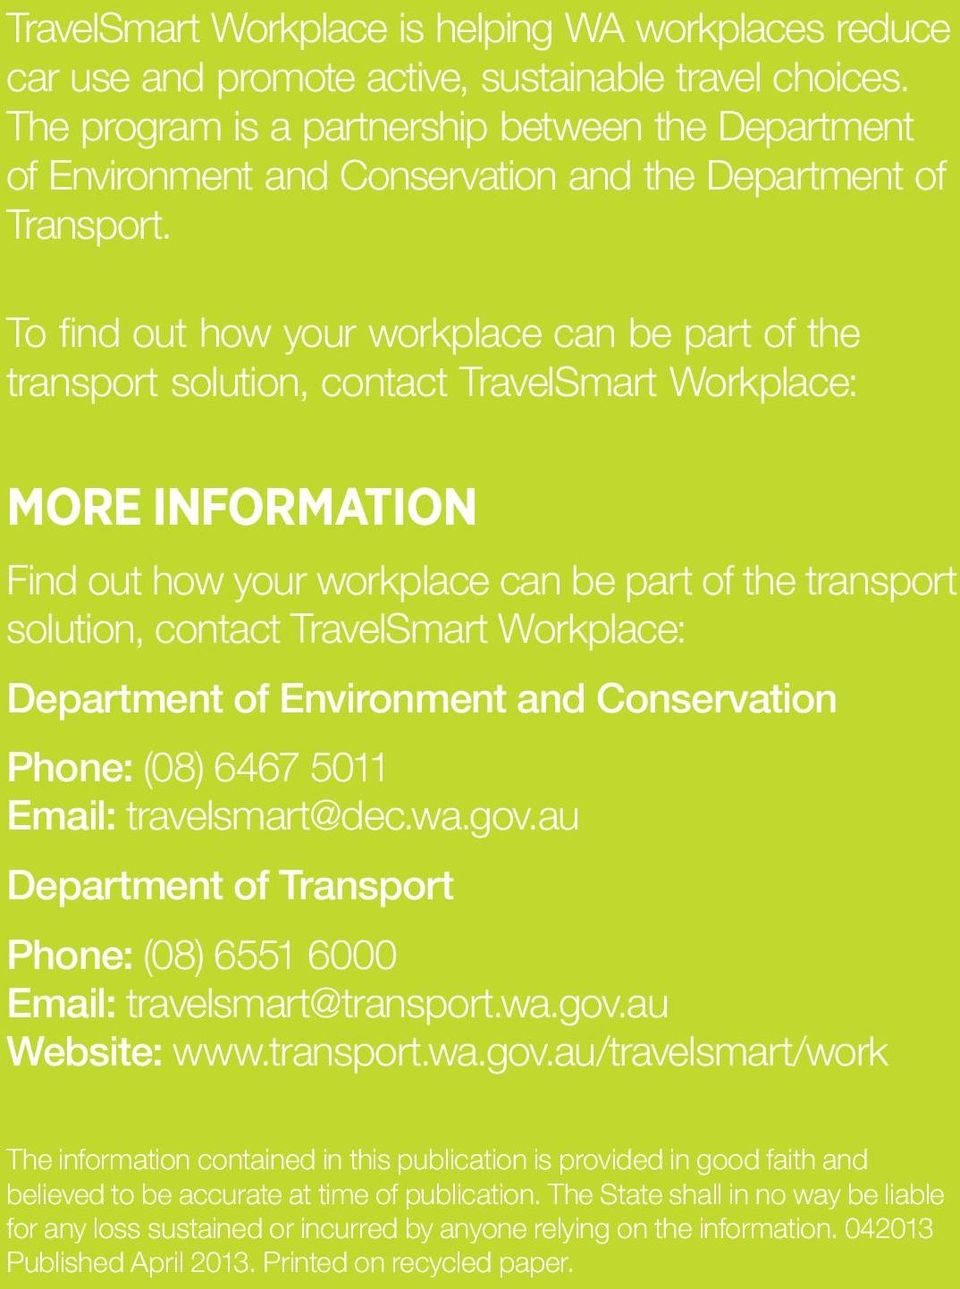 To find out how your workplace can be part of the transport solution, contact TravelSmart Workplace: MORE INFORMATION Find out how your workplace can be part of the transport solution, contact